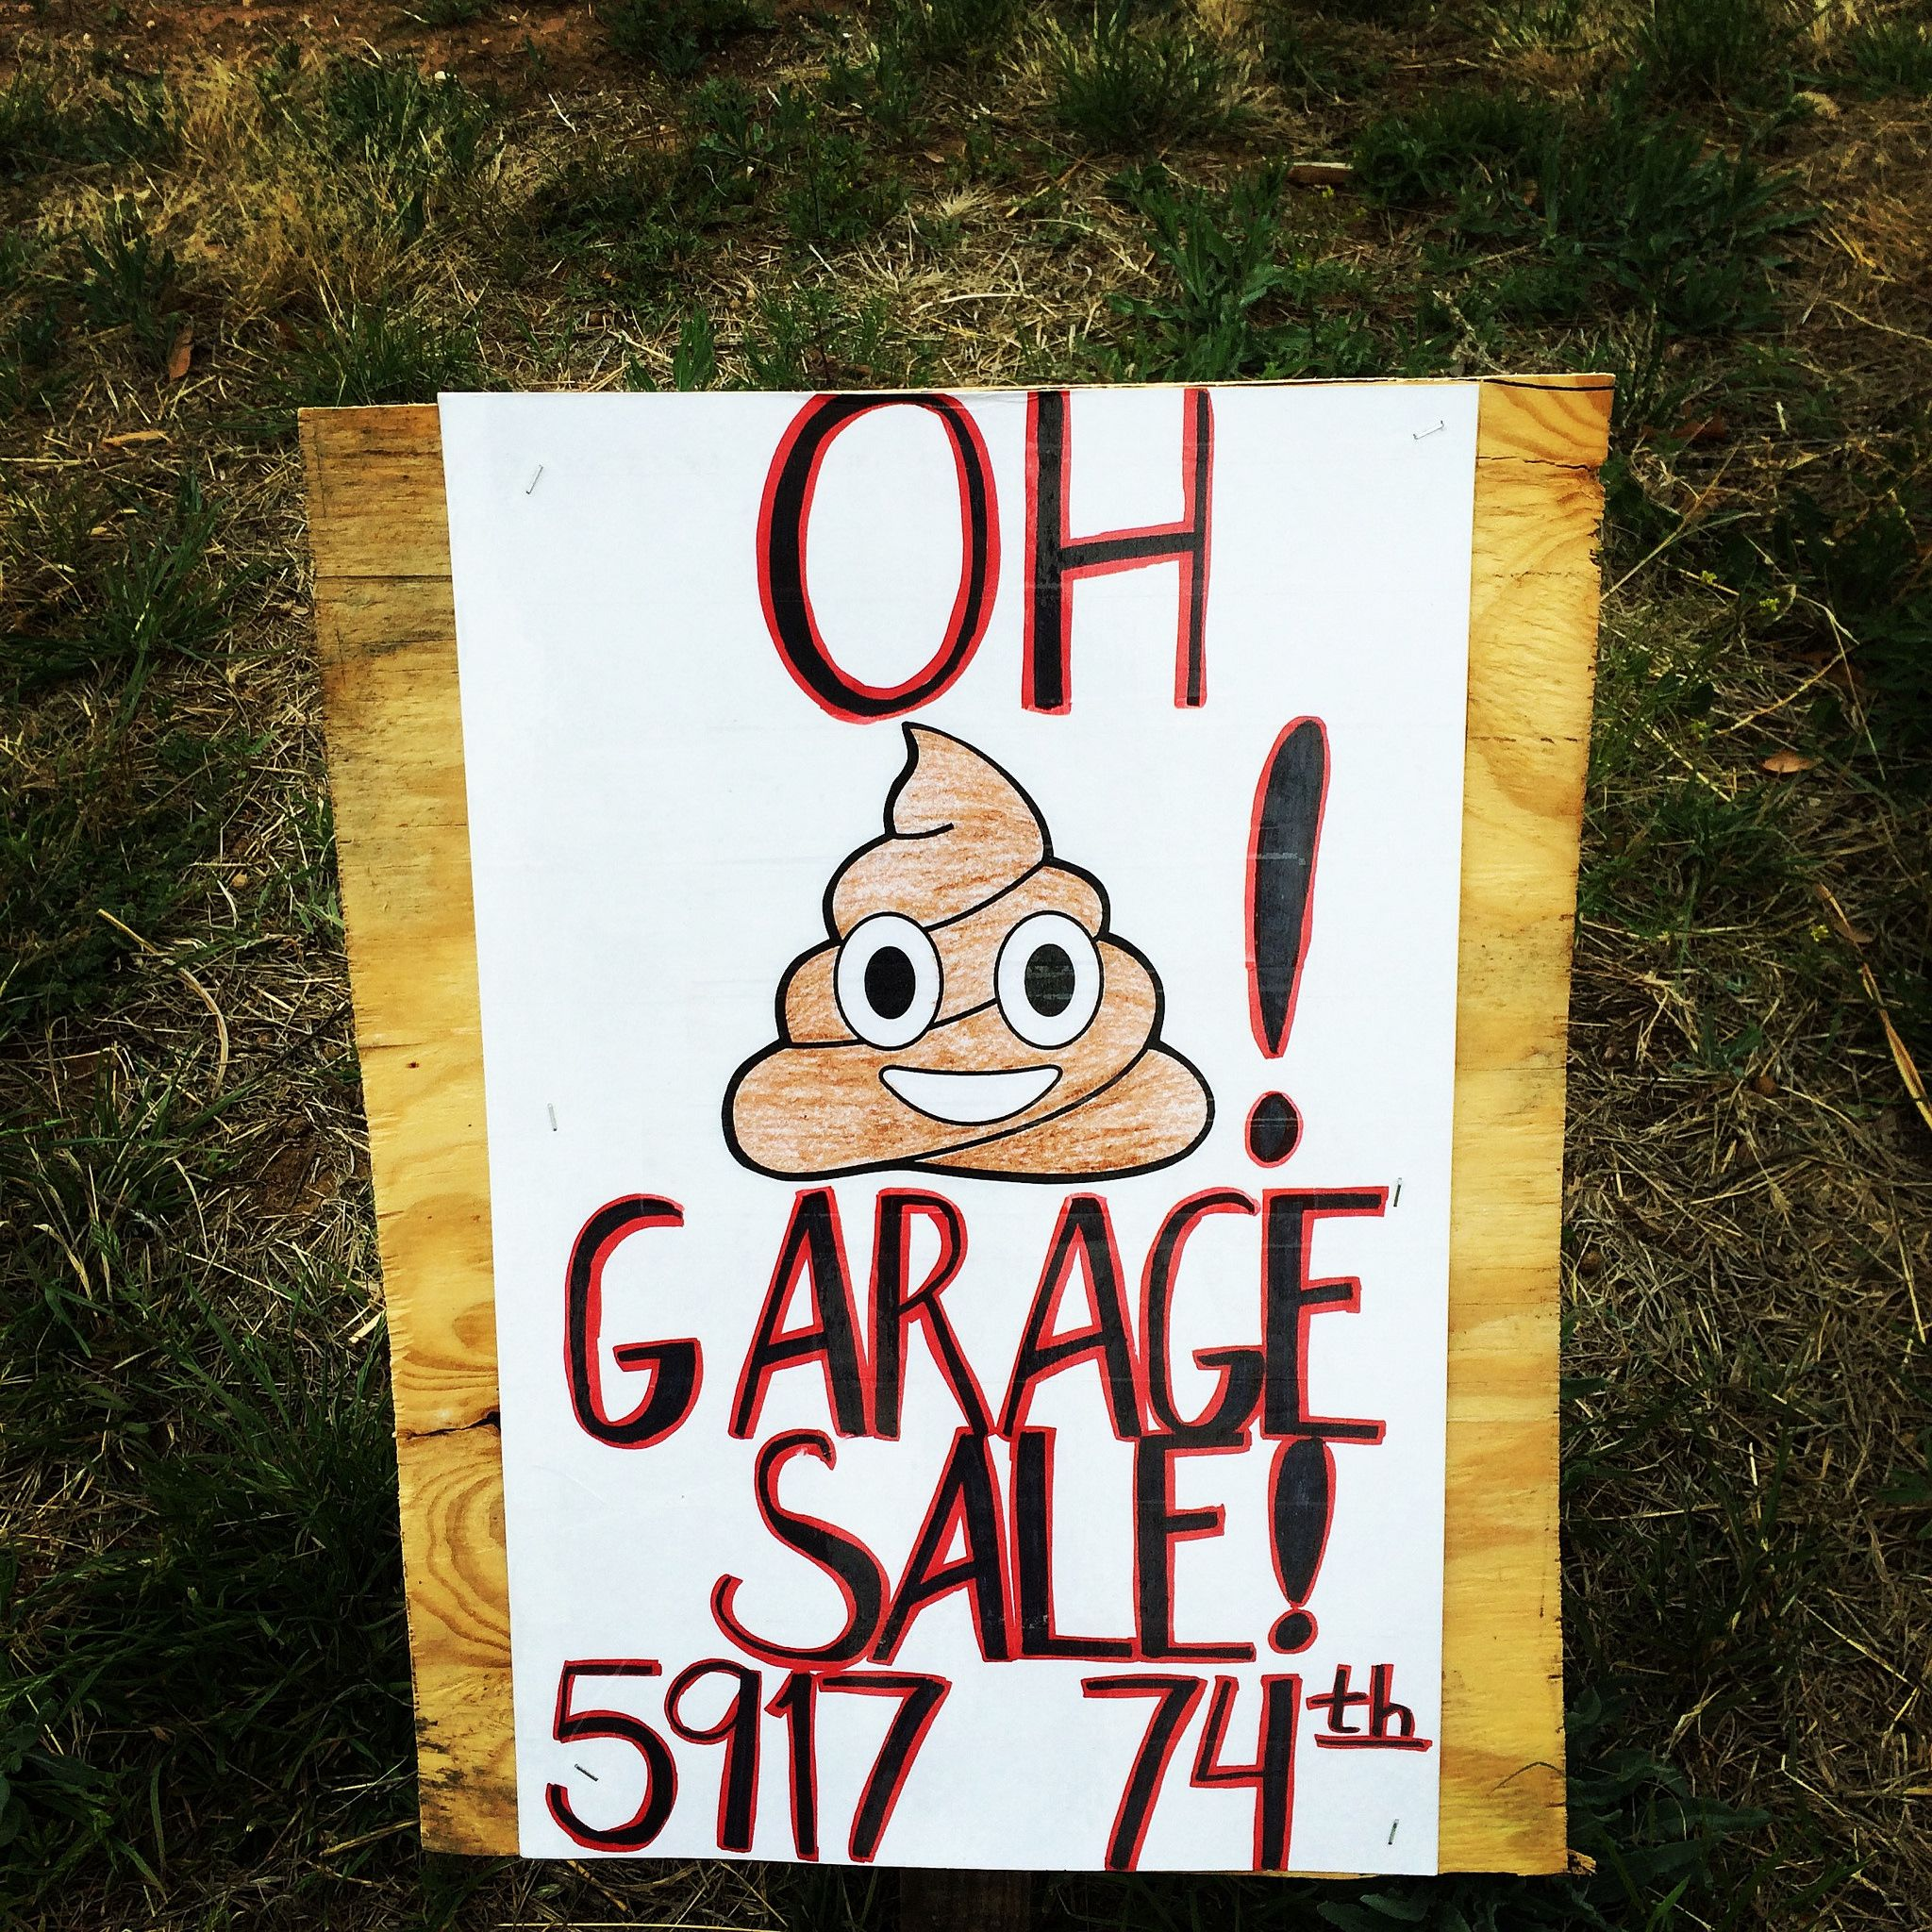 Learn how to host the very best garage sale ever - This Garage Sale Sign With The Poop Emoji Caught My Eye A Few Weeks Ago This Is Probably The Best Known